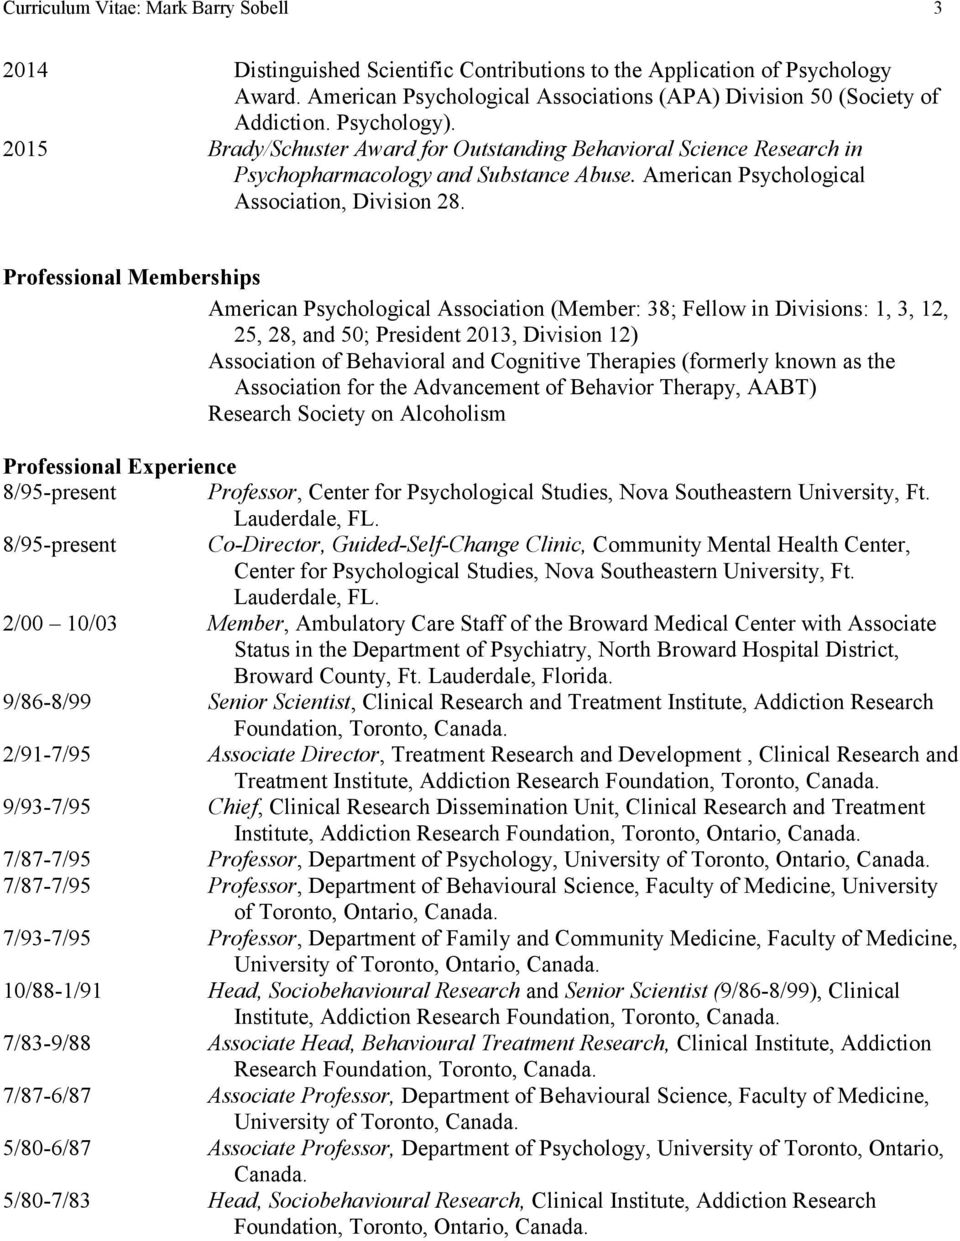 Professional Memberships American Psychological Association (Member: 38; Fellow in Divisions: 1, 3, 12, 25, 28, and 50; President 2013, Division 12) Association of Behavioral and Cognitive Therapies